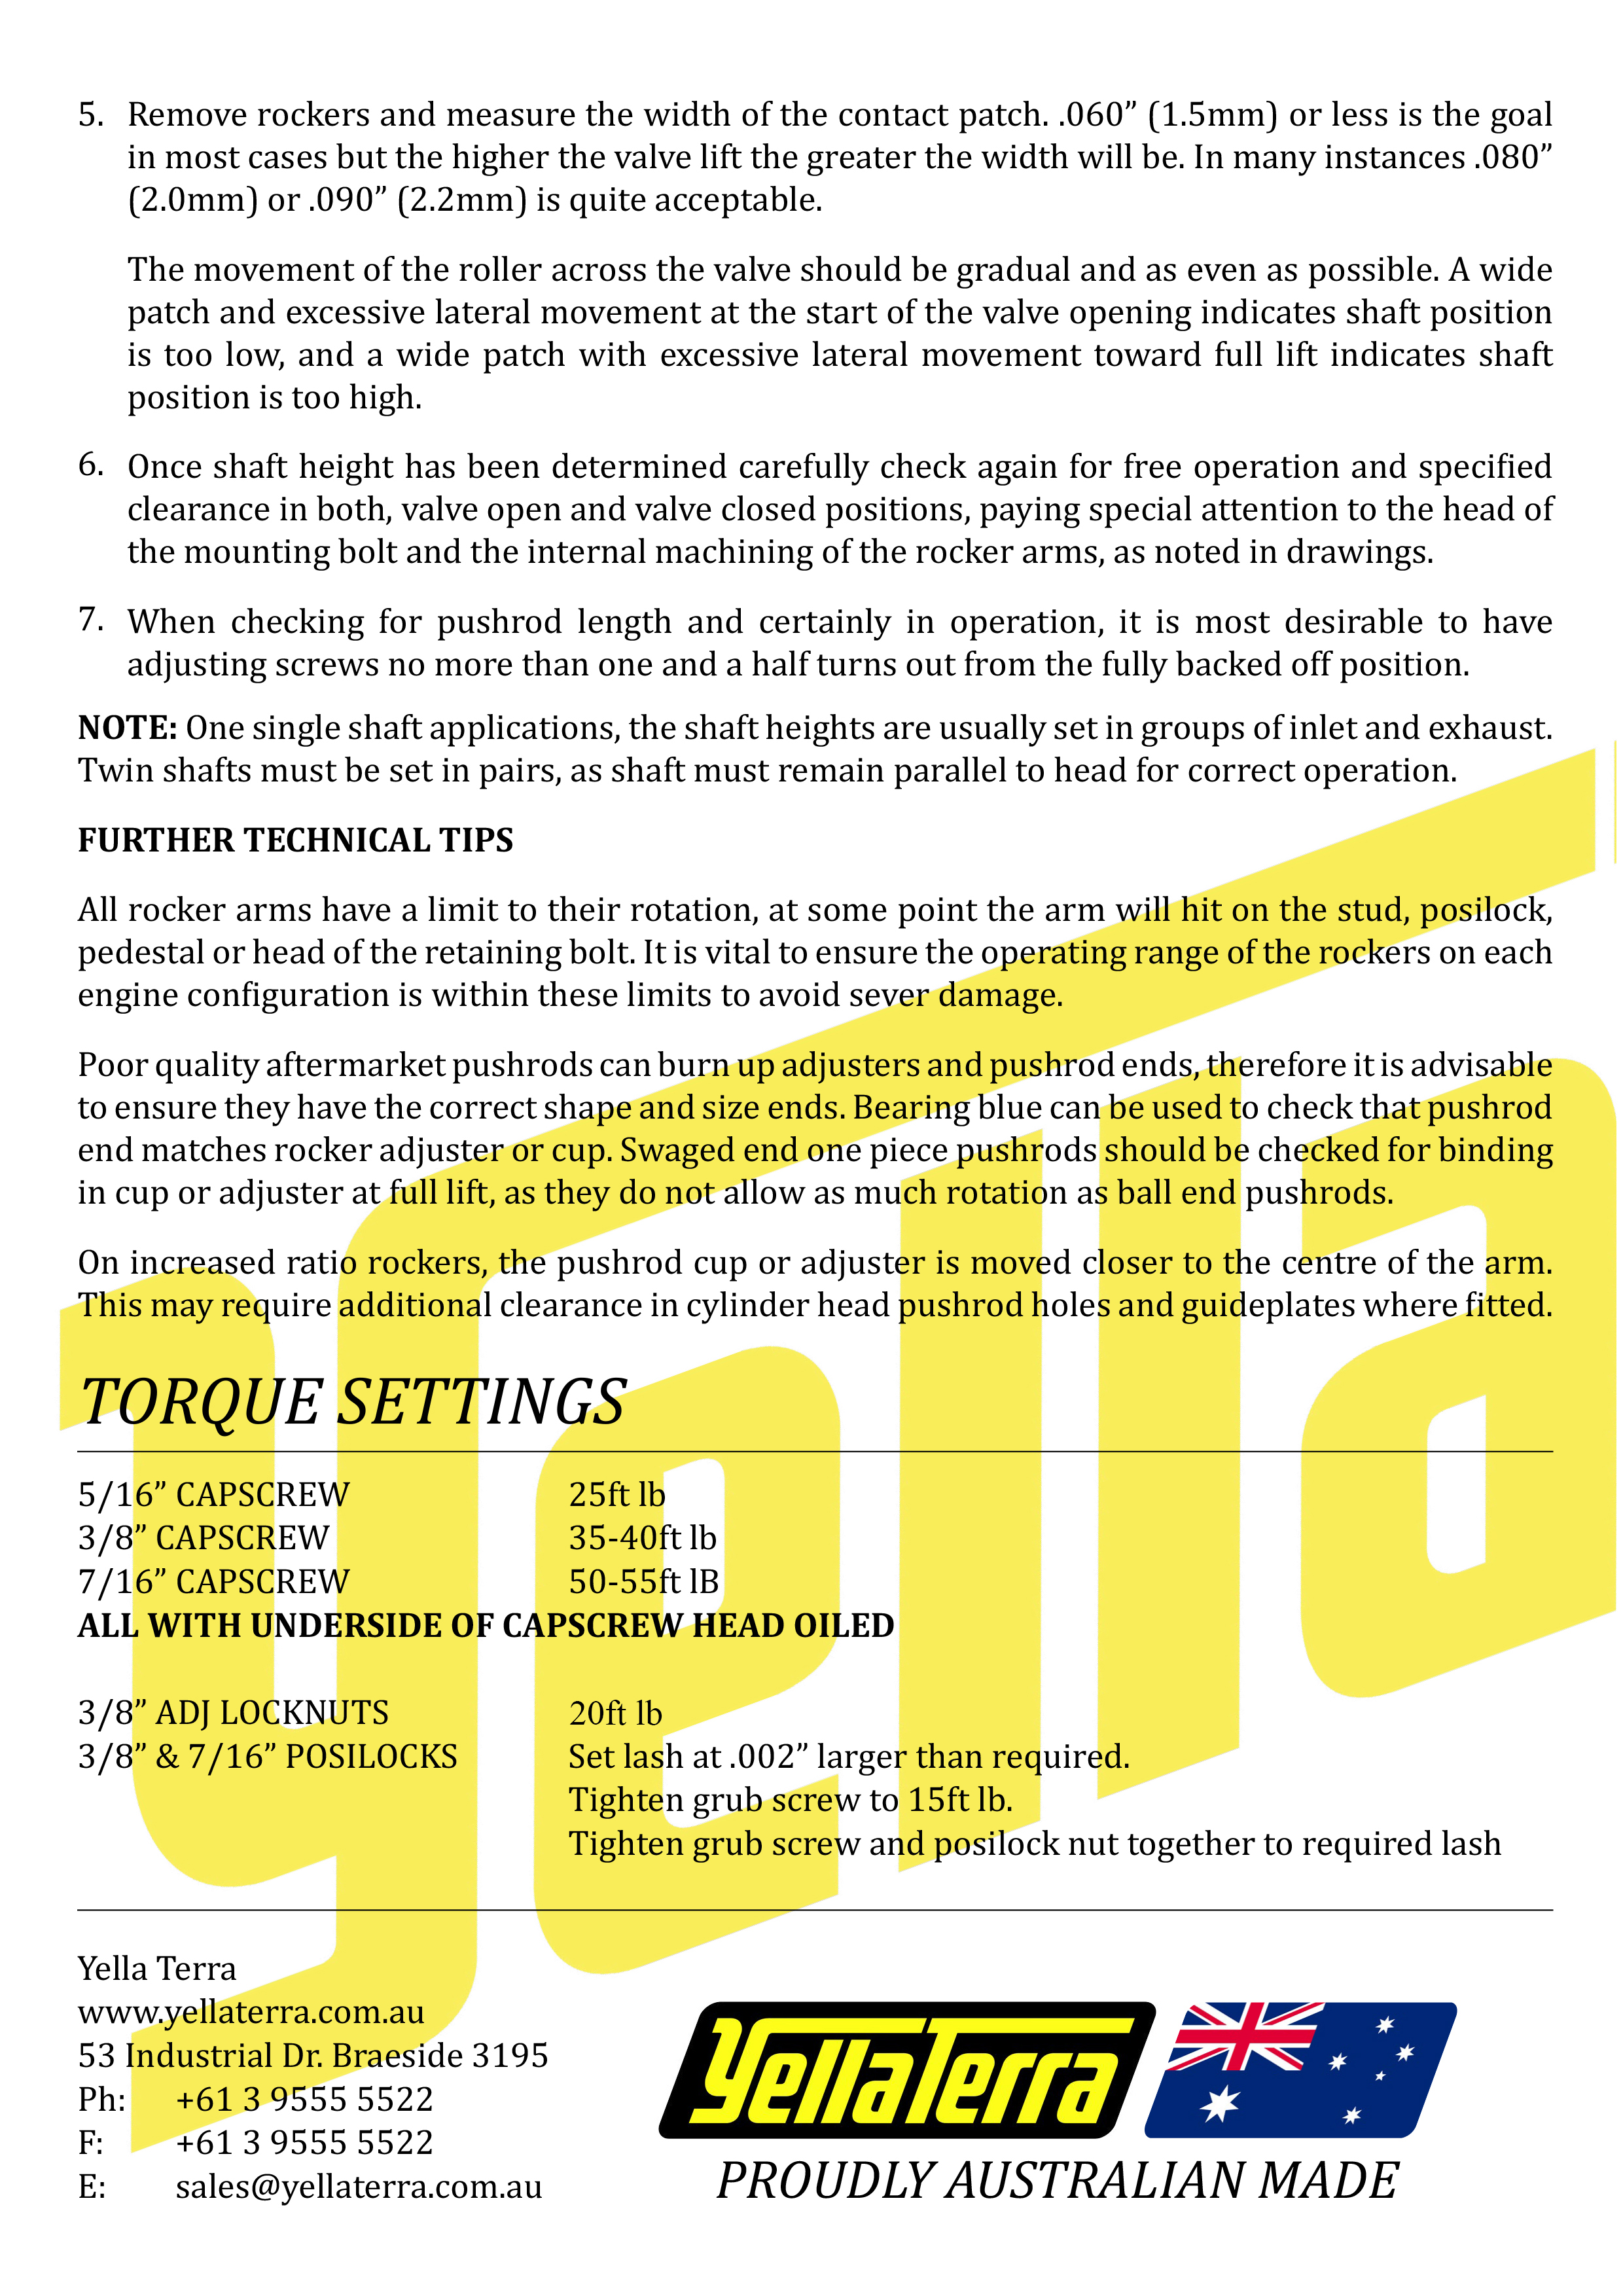 generic-instructions-ver1.18-page-4.jpg